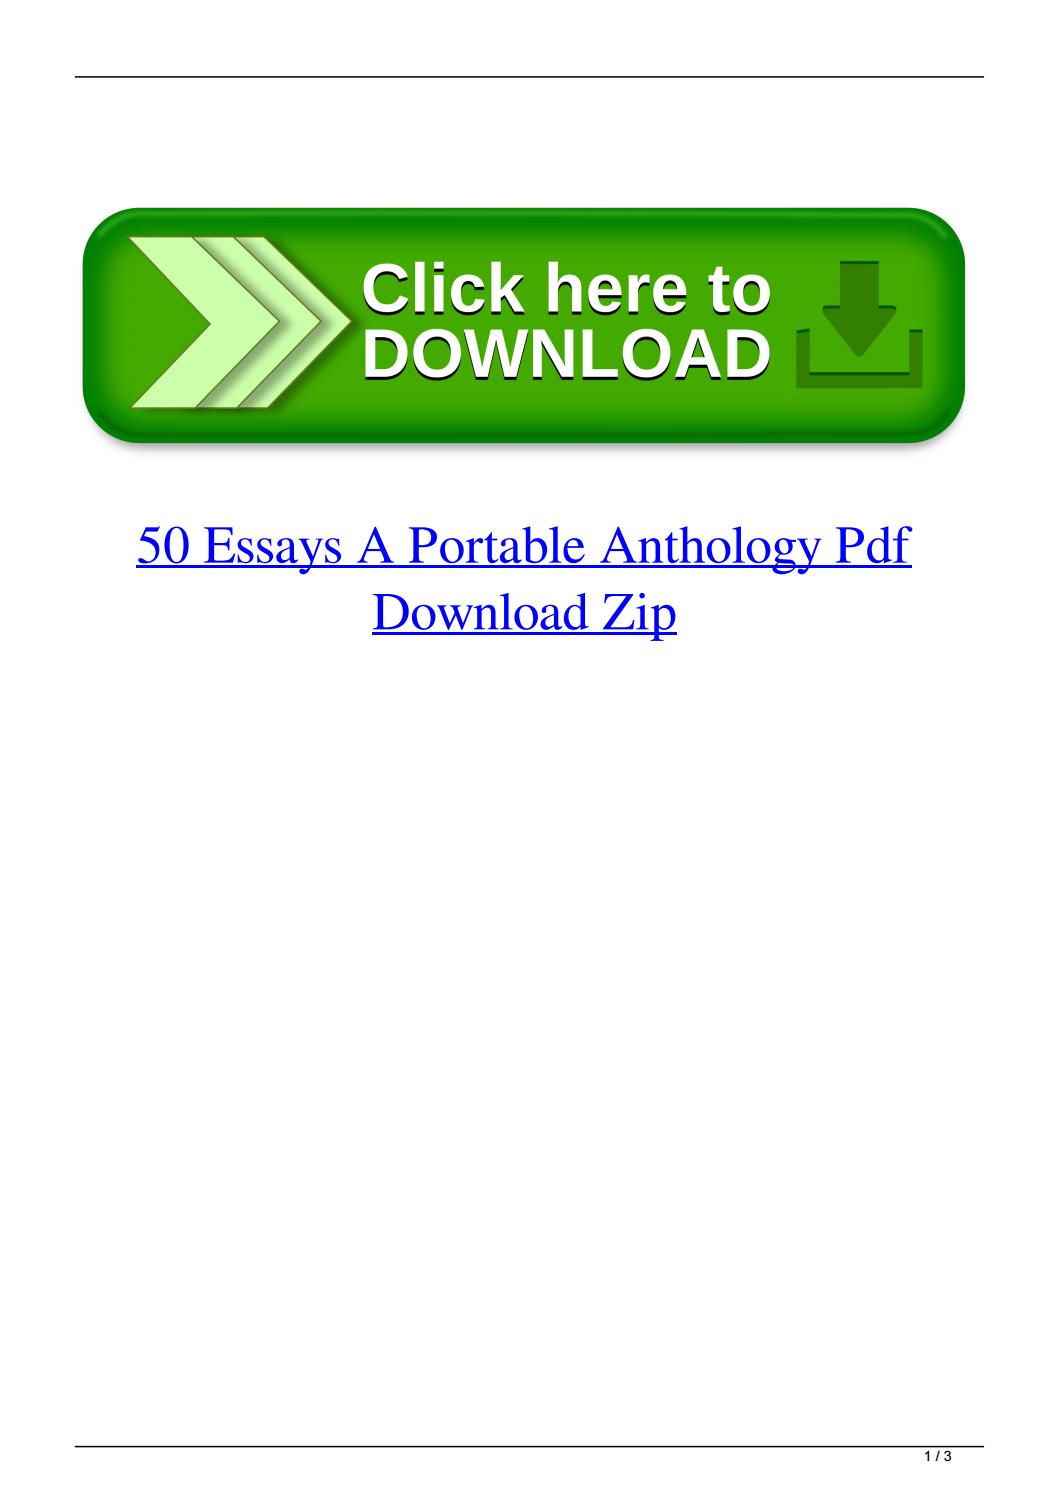 016 Essay Example Page 1 Essays Portable Anthology 4th Edition Awful 50 A Pdf Free Full